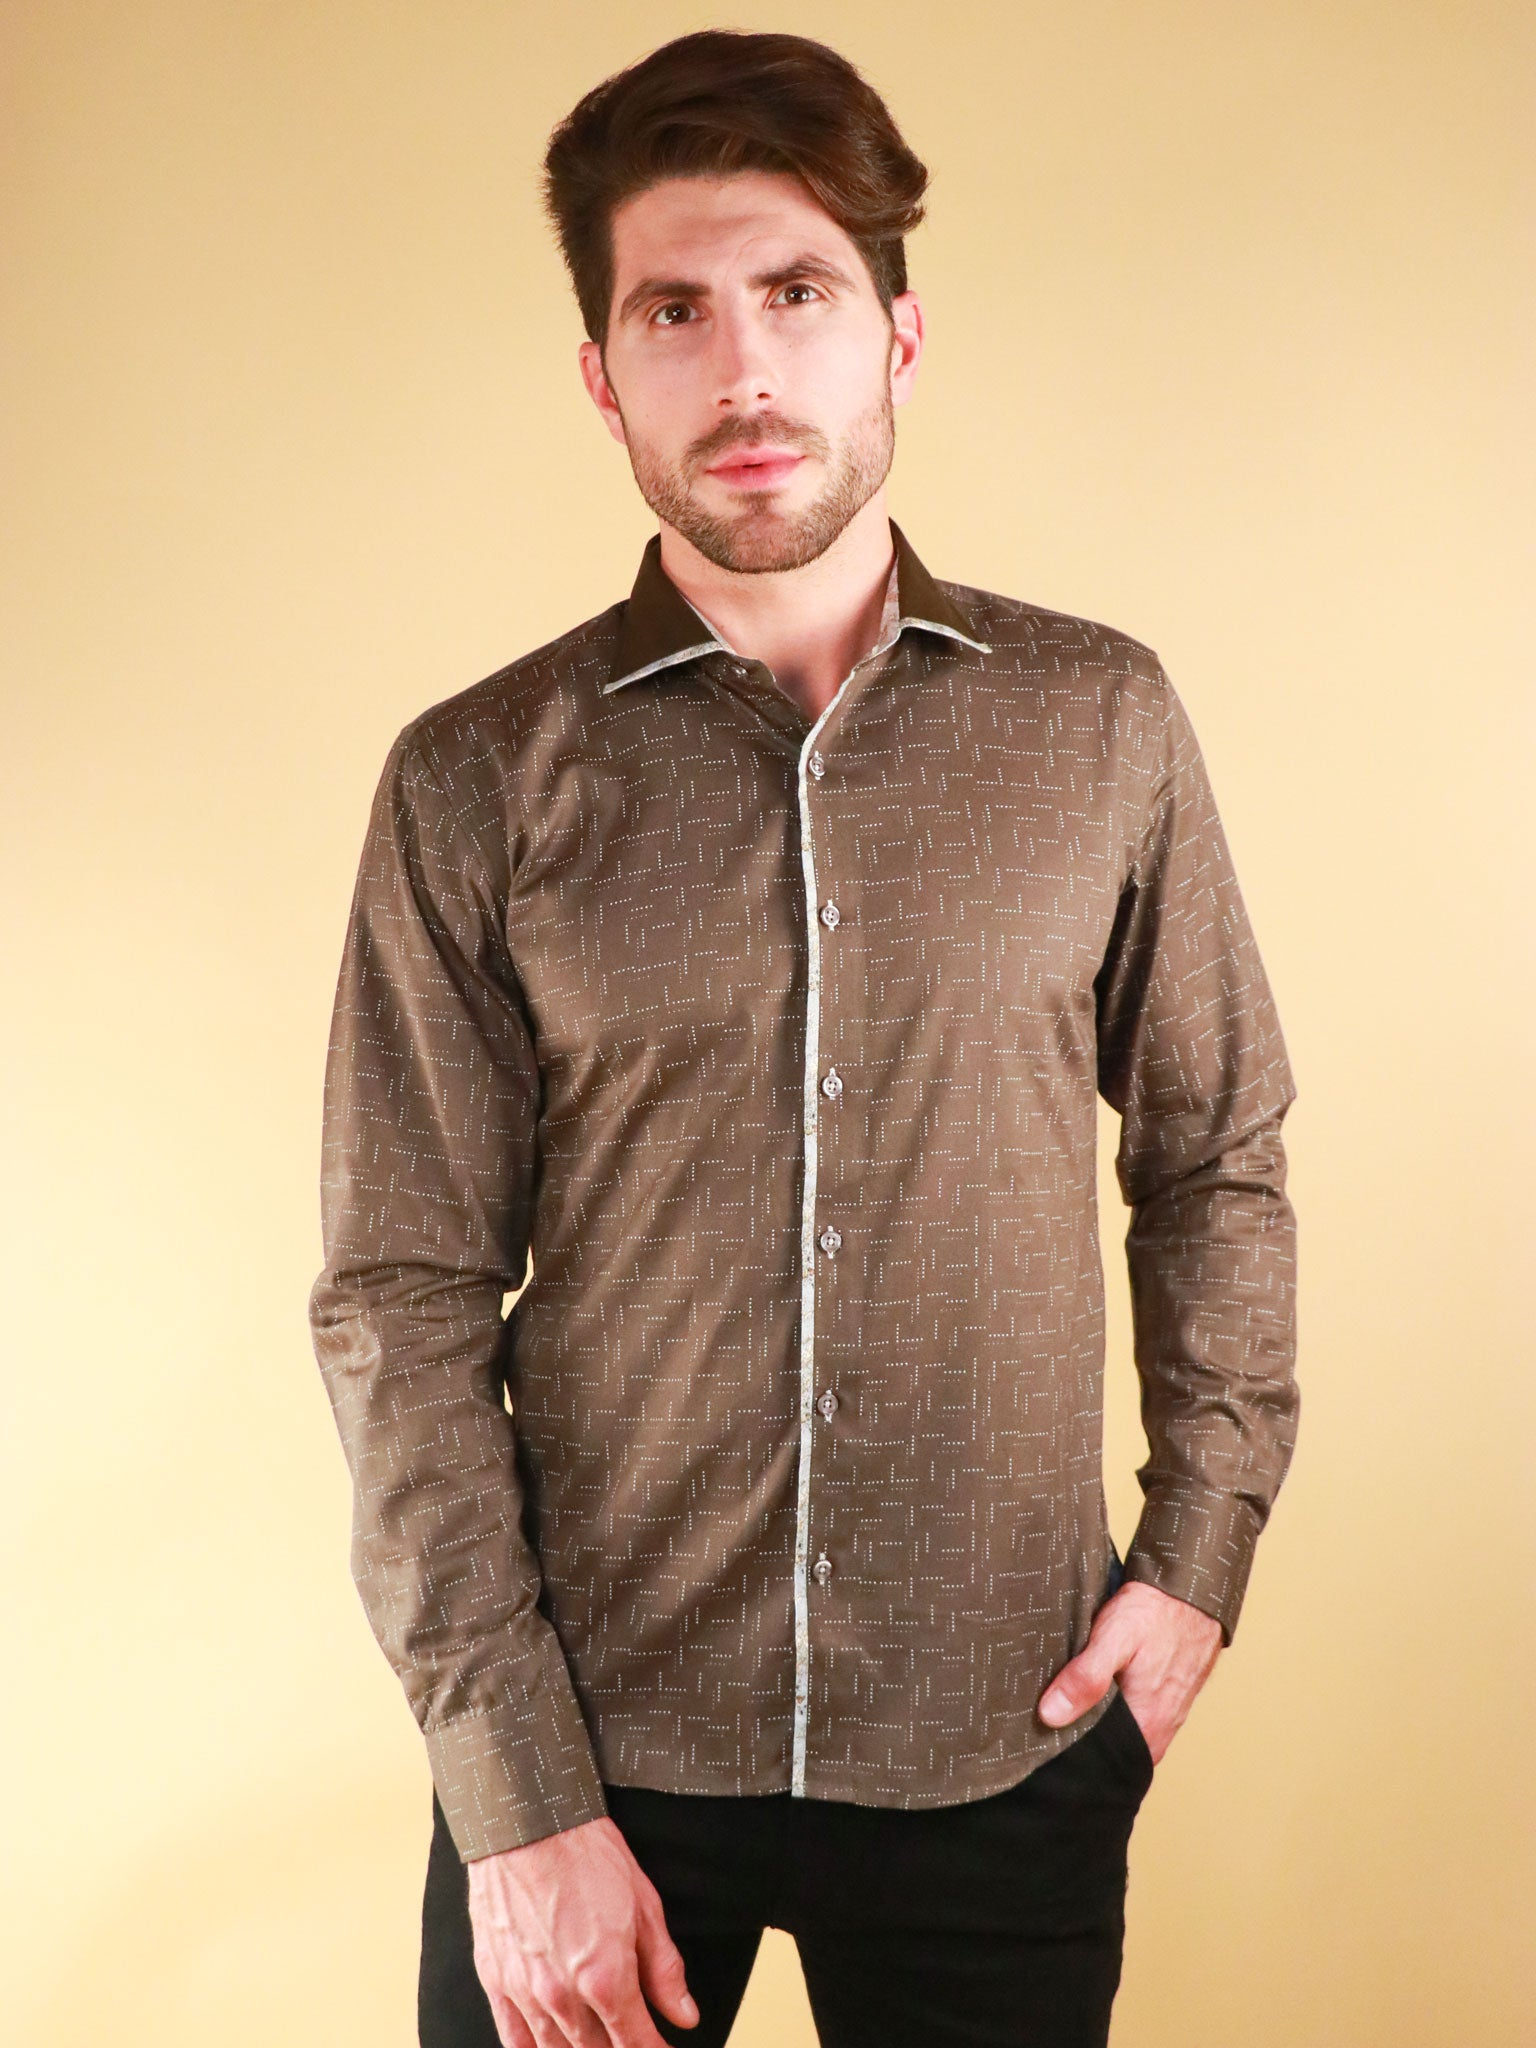 weave loom shirt model image